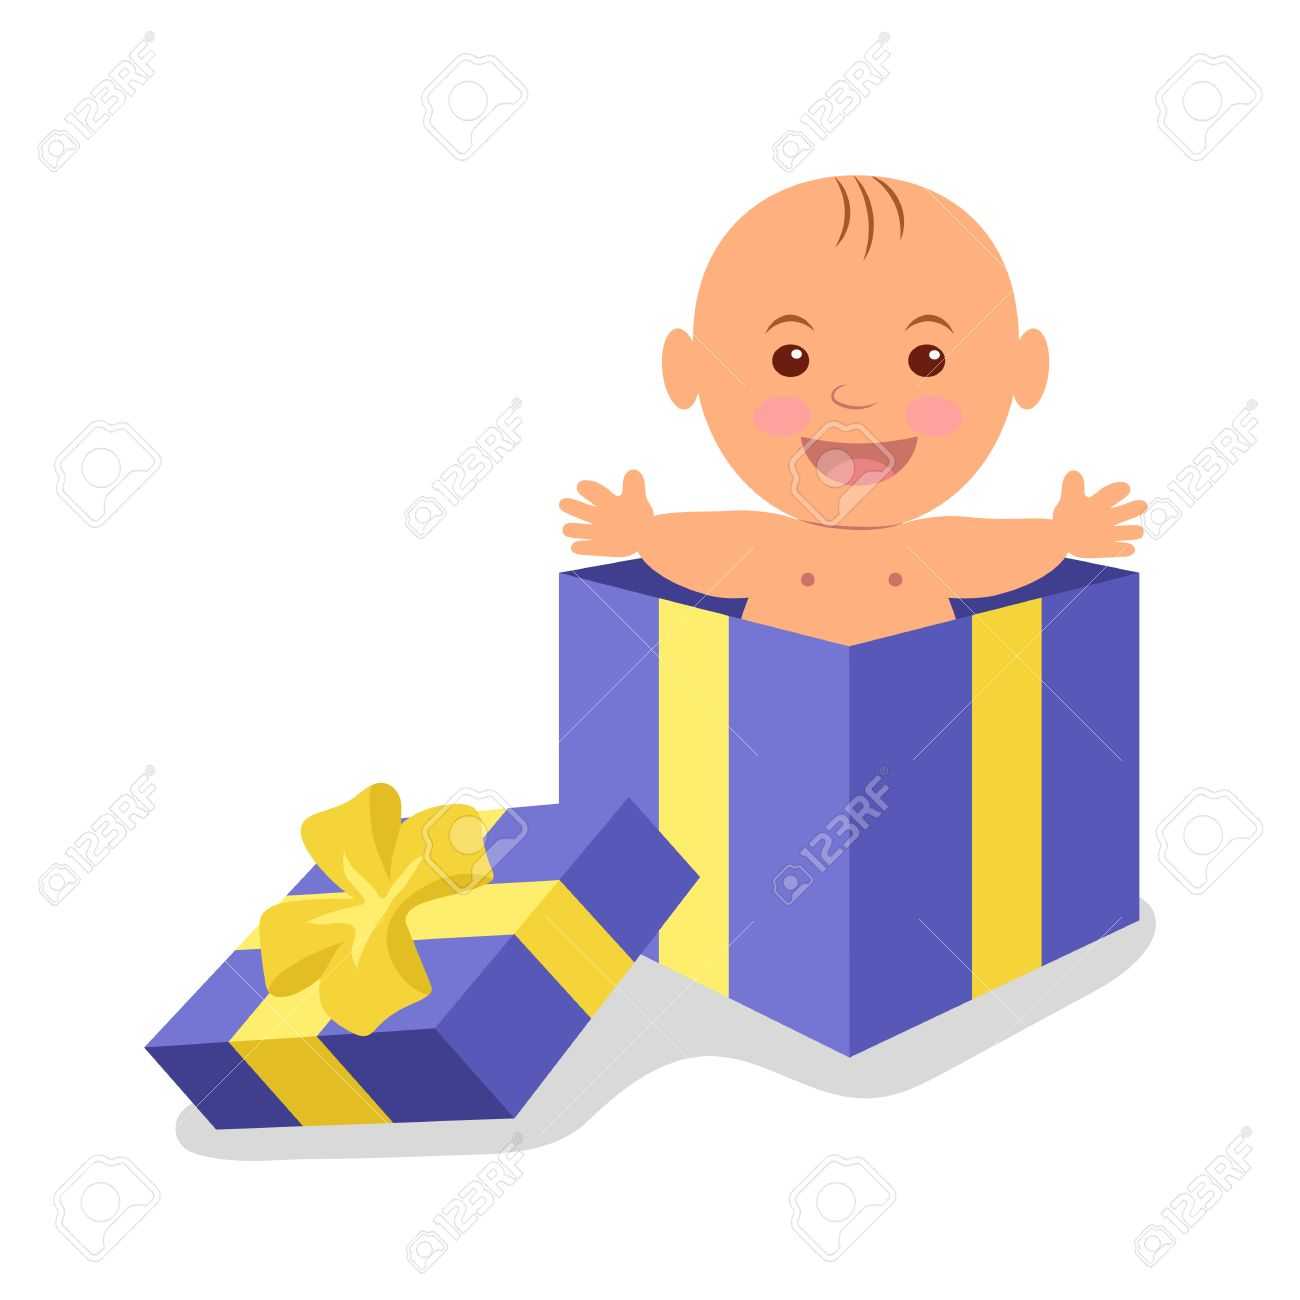 Cute baby boy in a gift box. The precious gift of life. - 49591163